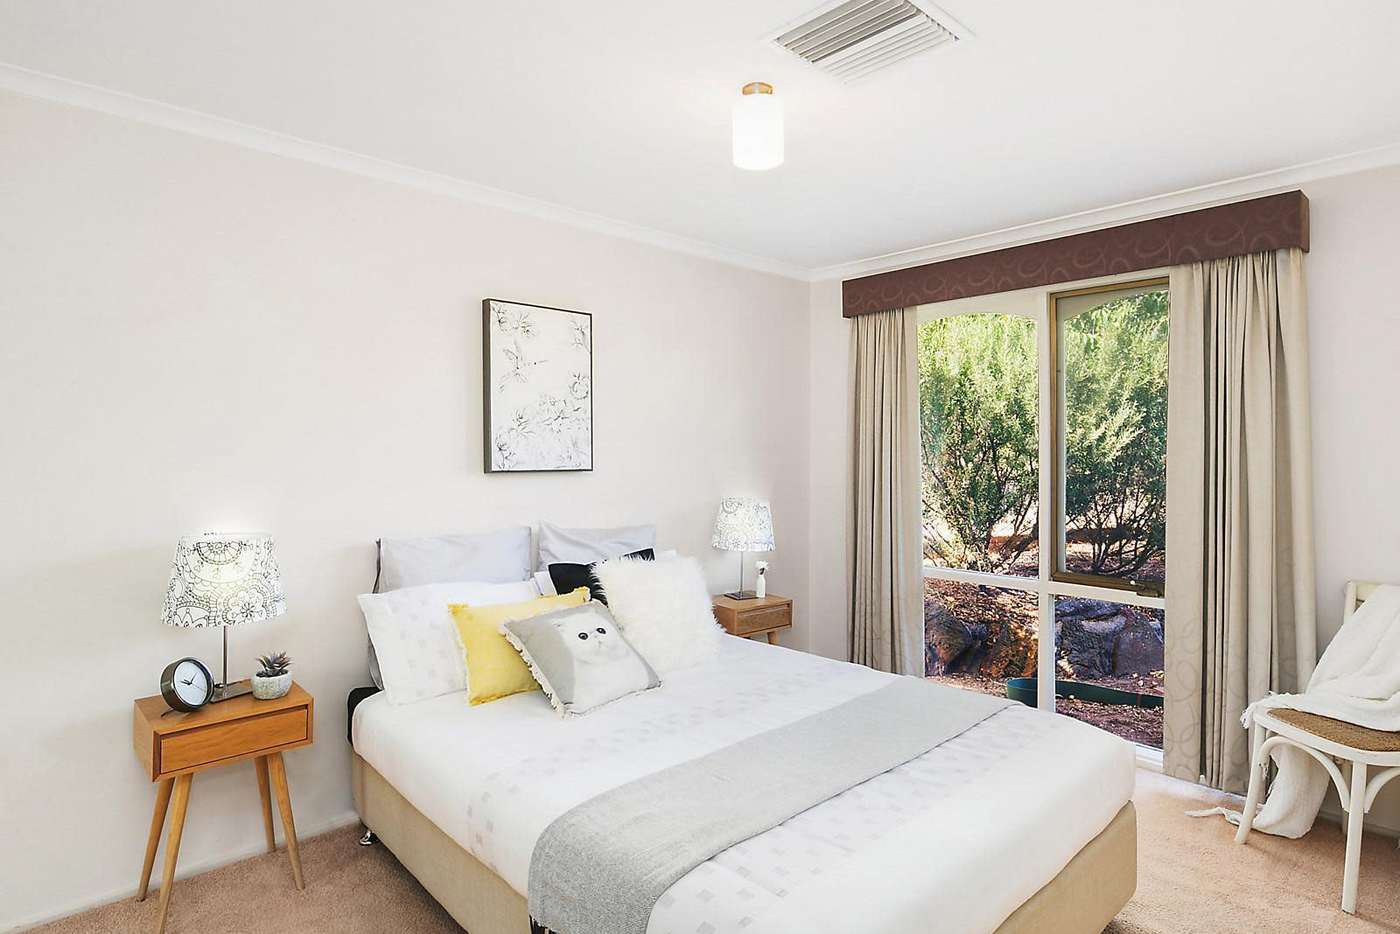 Sixth view of Homely house listing, 84 Shakespeare Crescent, Fraser ACT 2615